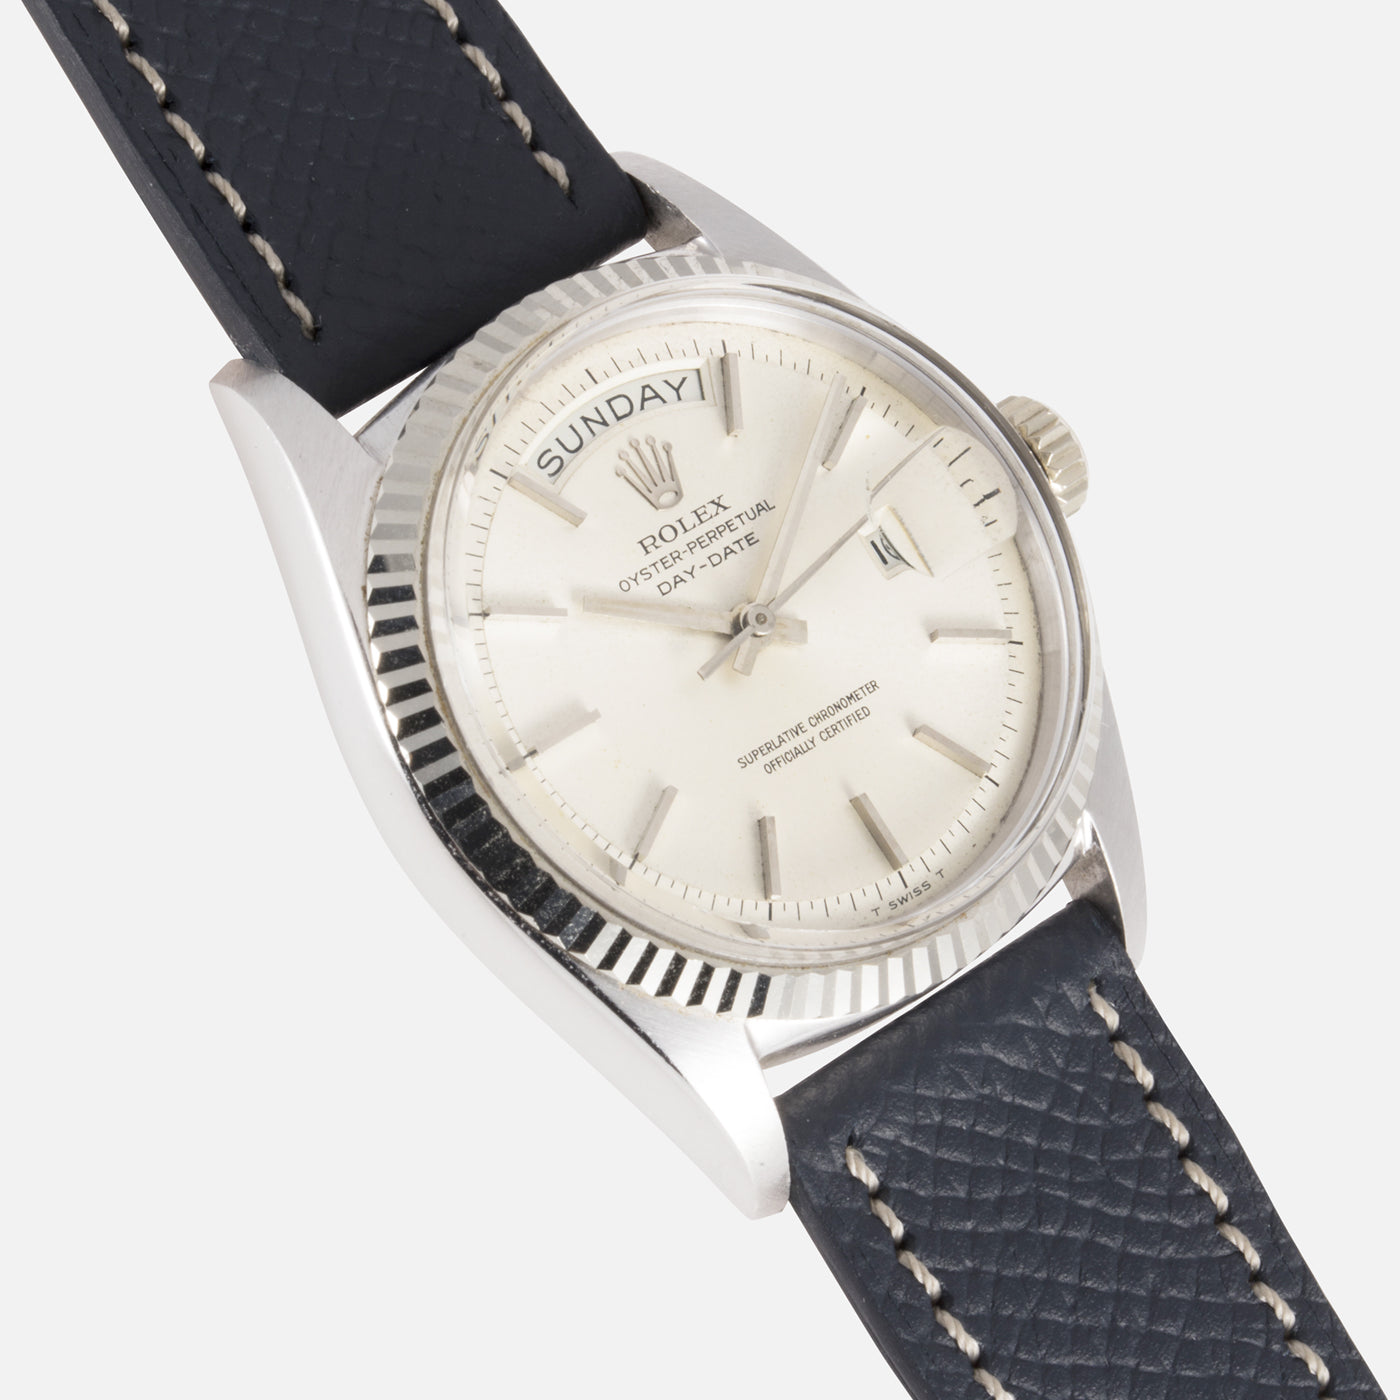 Rolex Day Date 1803 White Gold